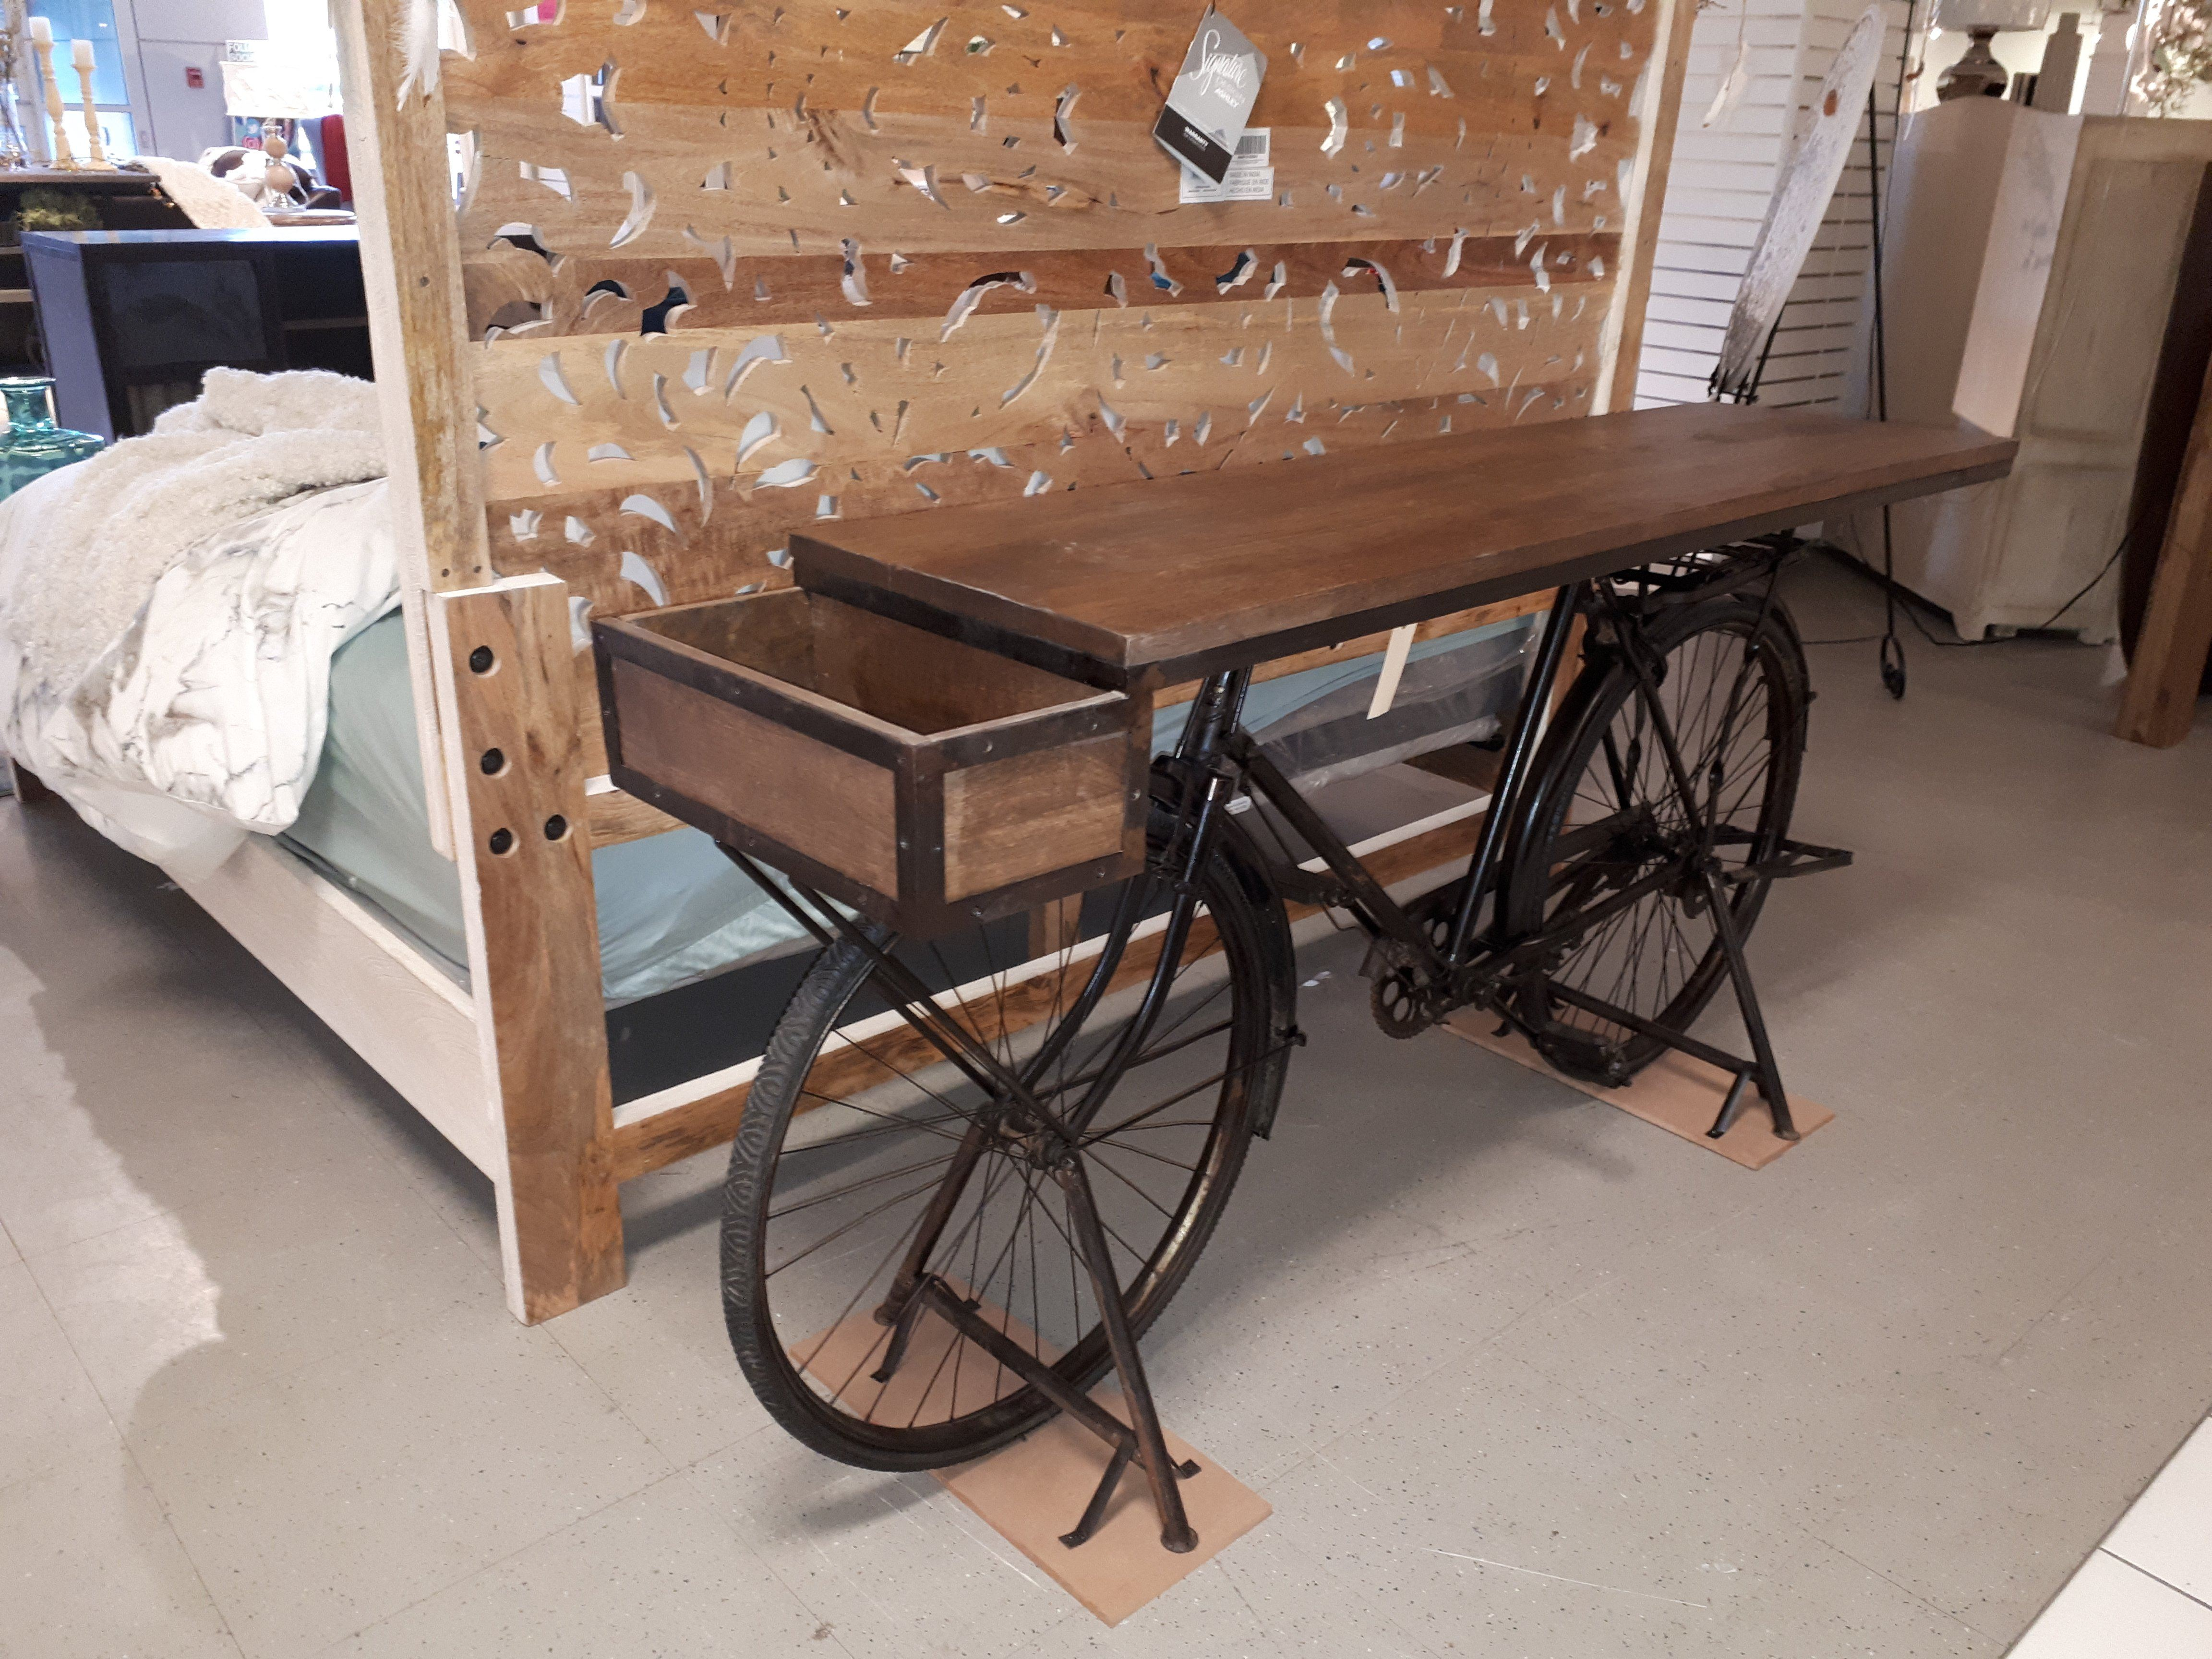 Iron Peddler Bar | Calgary's Furniture Store